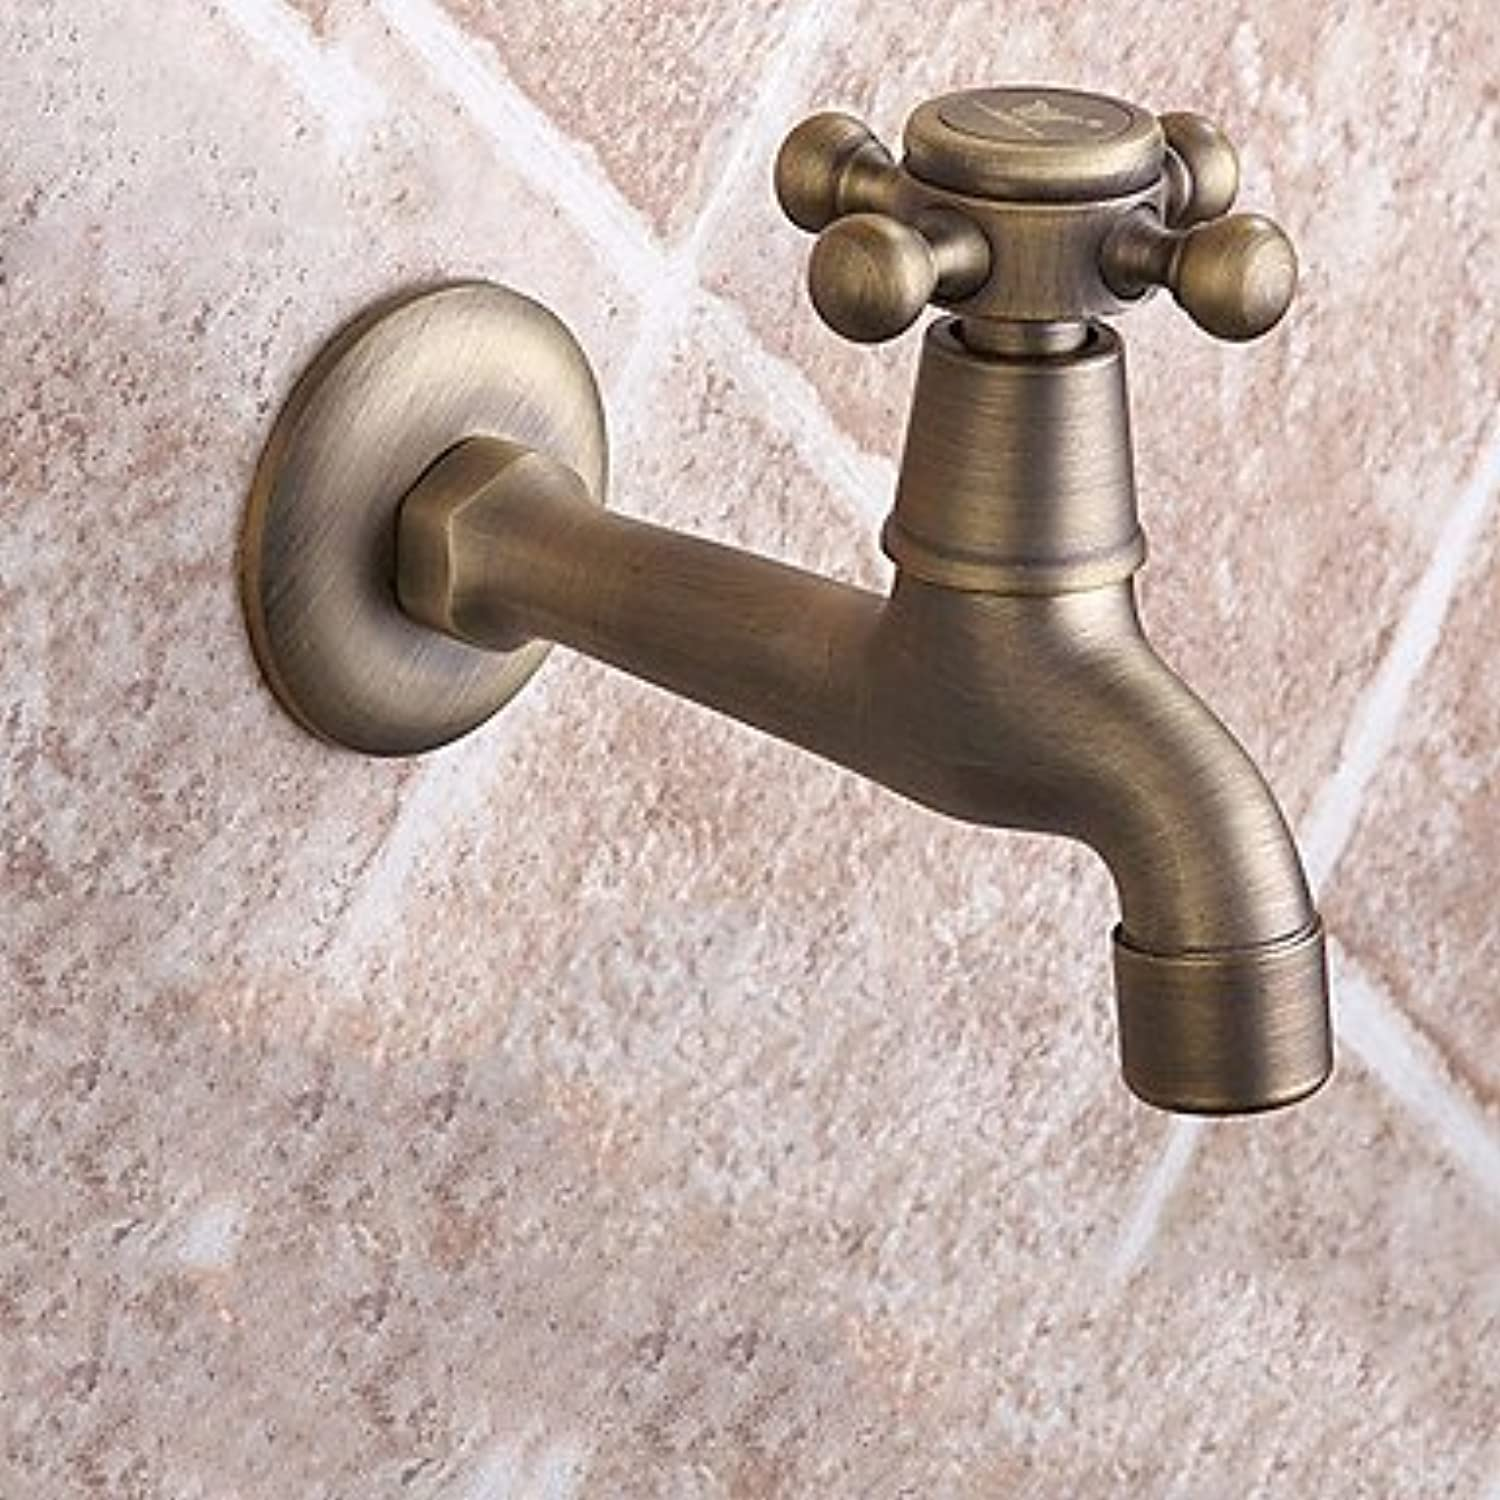 TSAR003 1459.5 Brass Brushed Cold Water Sink Faucet